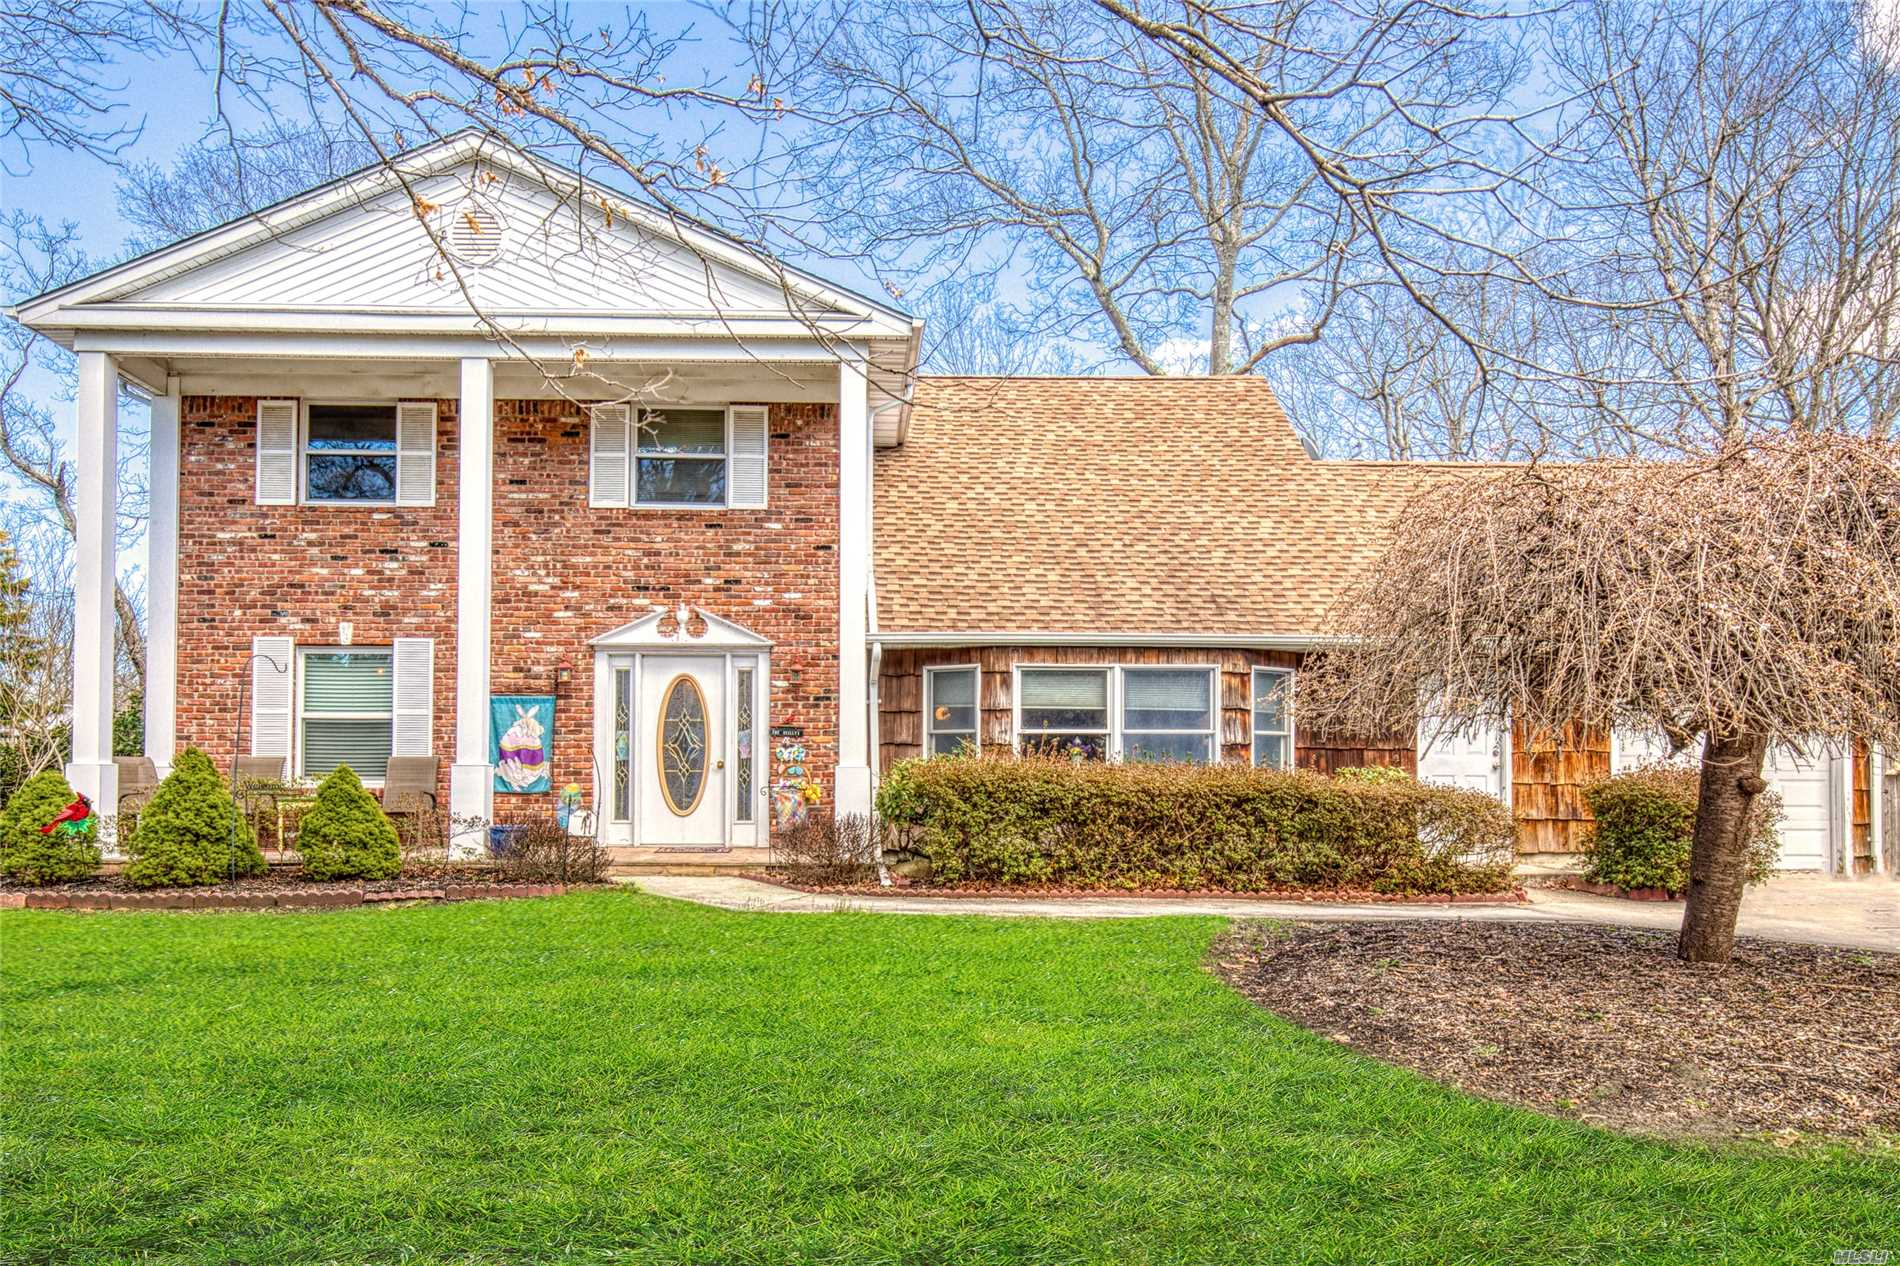 Lovely & Spacious 4 Bedroom, 2.5 Colonial with EIK w/Oak Cabinets, Stainless Steel Appliances, & Ceramic Tile Floors, Updated Baths, Hardwood Floors, Full Brick Wall Fireplace, Some Andersen Windows, 200 Amp Electric, New Hot Water Heater, Newer Above Ground Oil Tank, 2 Attics, New Pillars, Newer: Roof, Siding, Leaders, & Gutters, Large .41/Acre Corner Property with New Deck, Crab Orchard Porch, Shed, IGS, Fenced Yard, & More! Won't Last! A Must See!